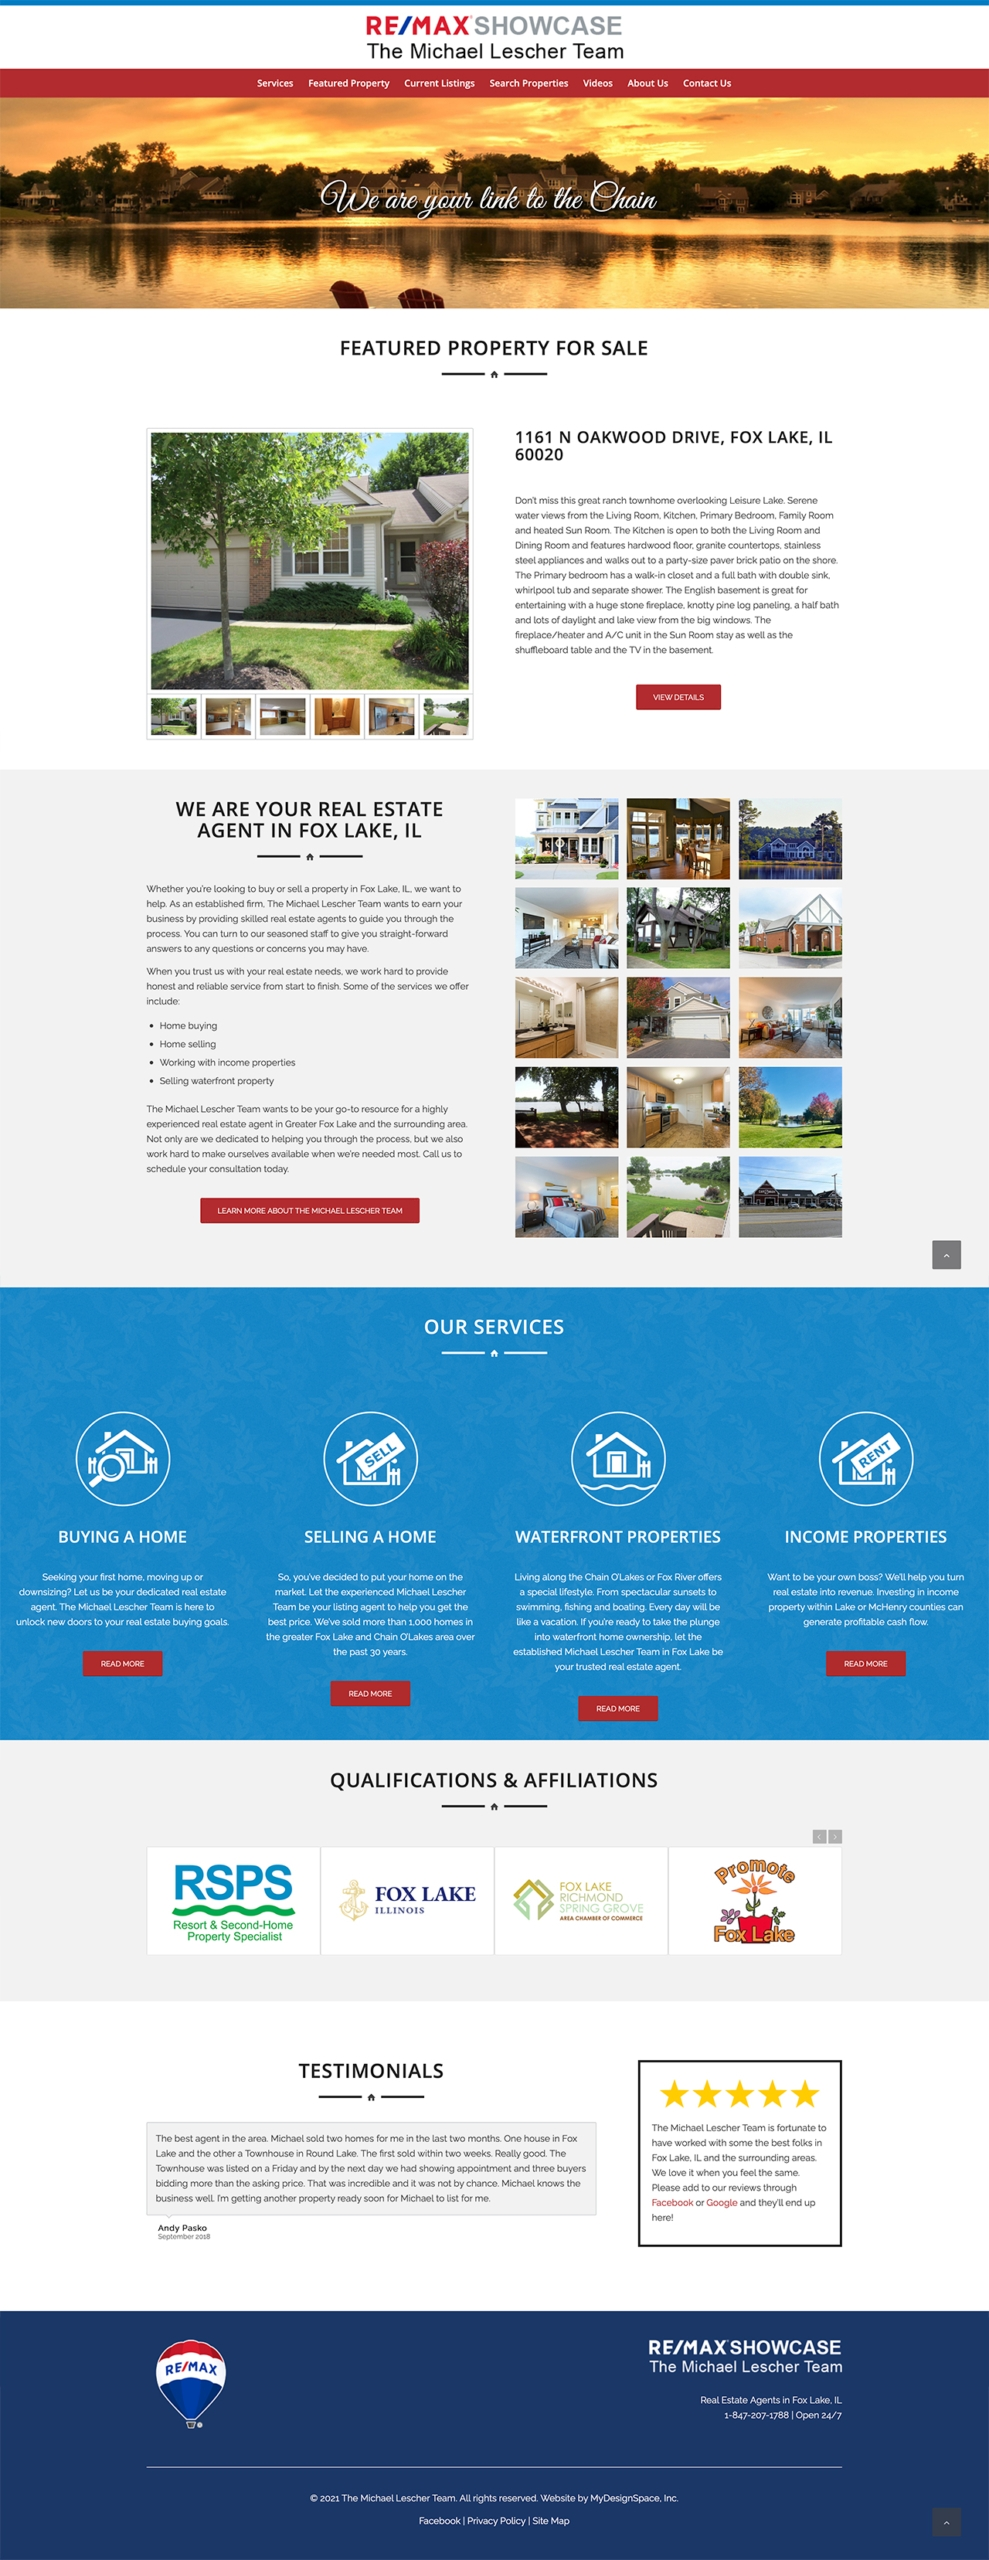 Remax Showcase - The Michael Lescher Team Home Page Layout